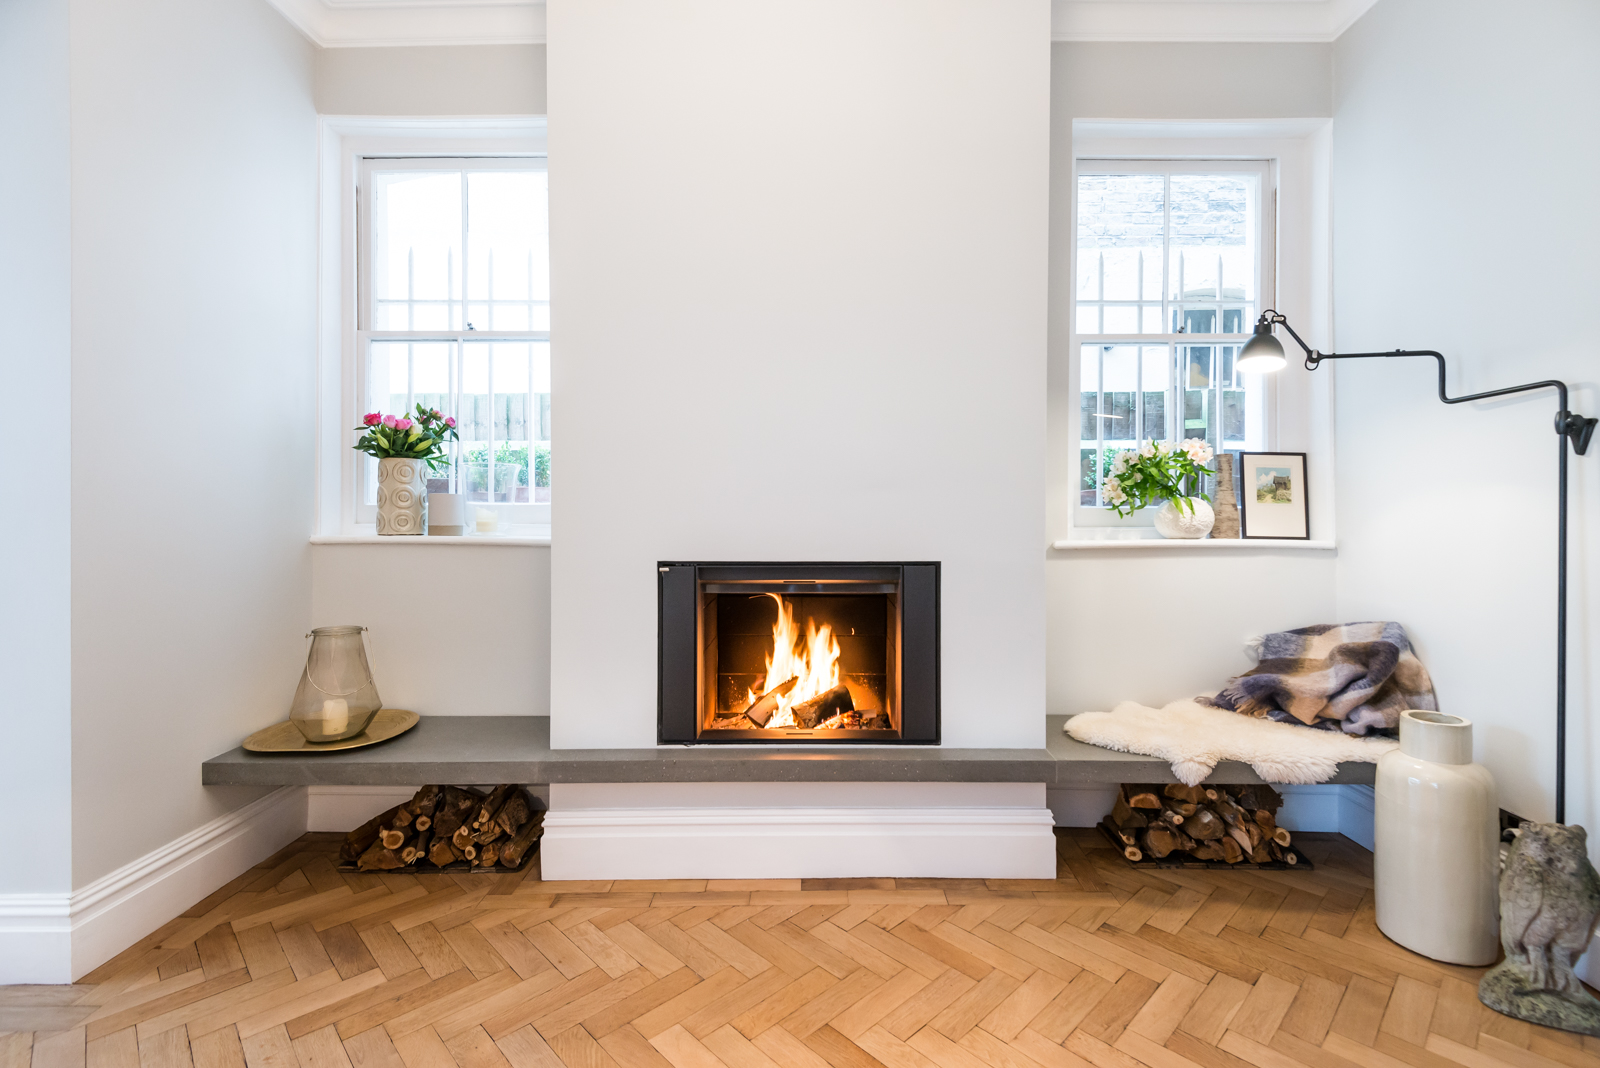 A concrete fire surround designed and handmade by Forma Studios for a private client in central London